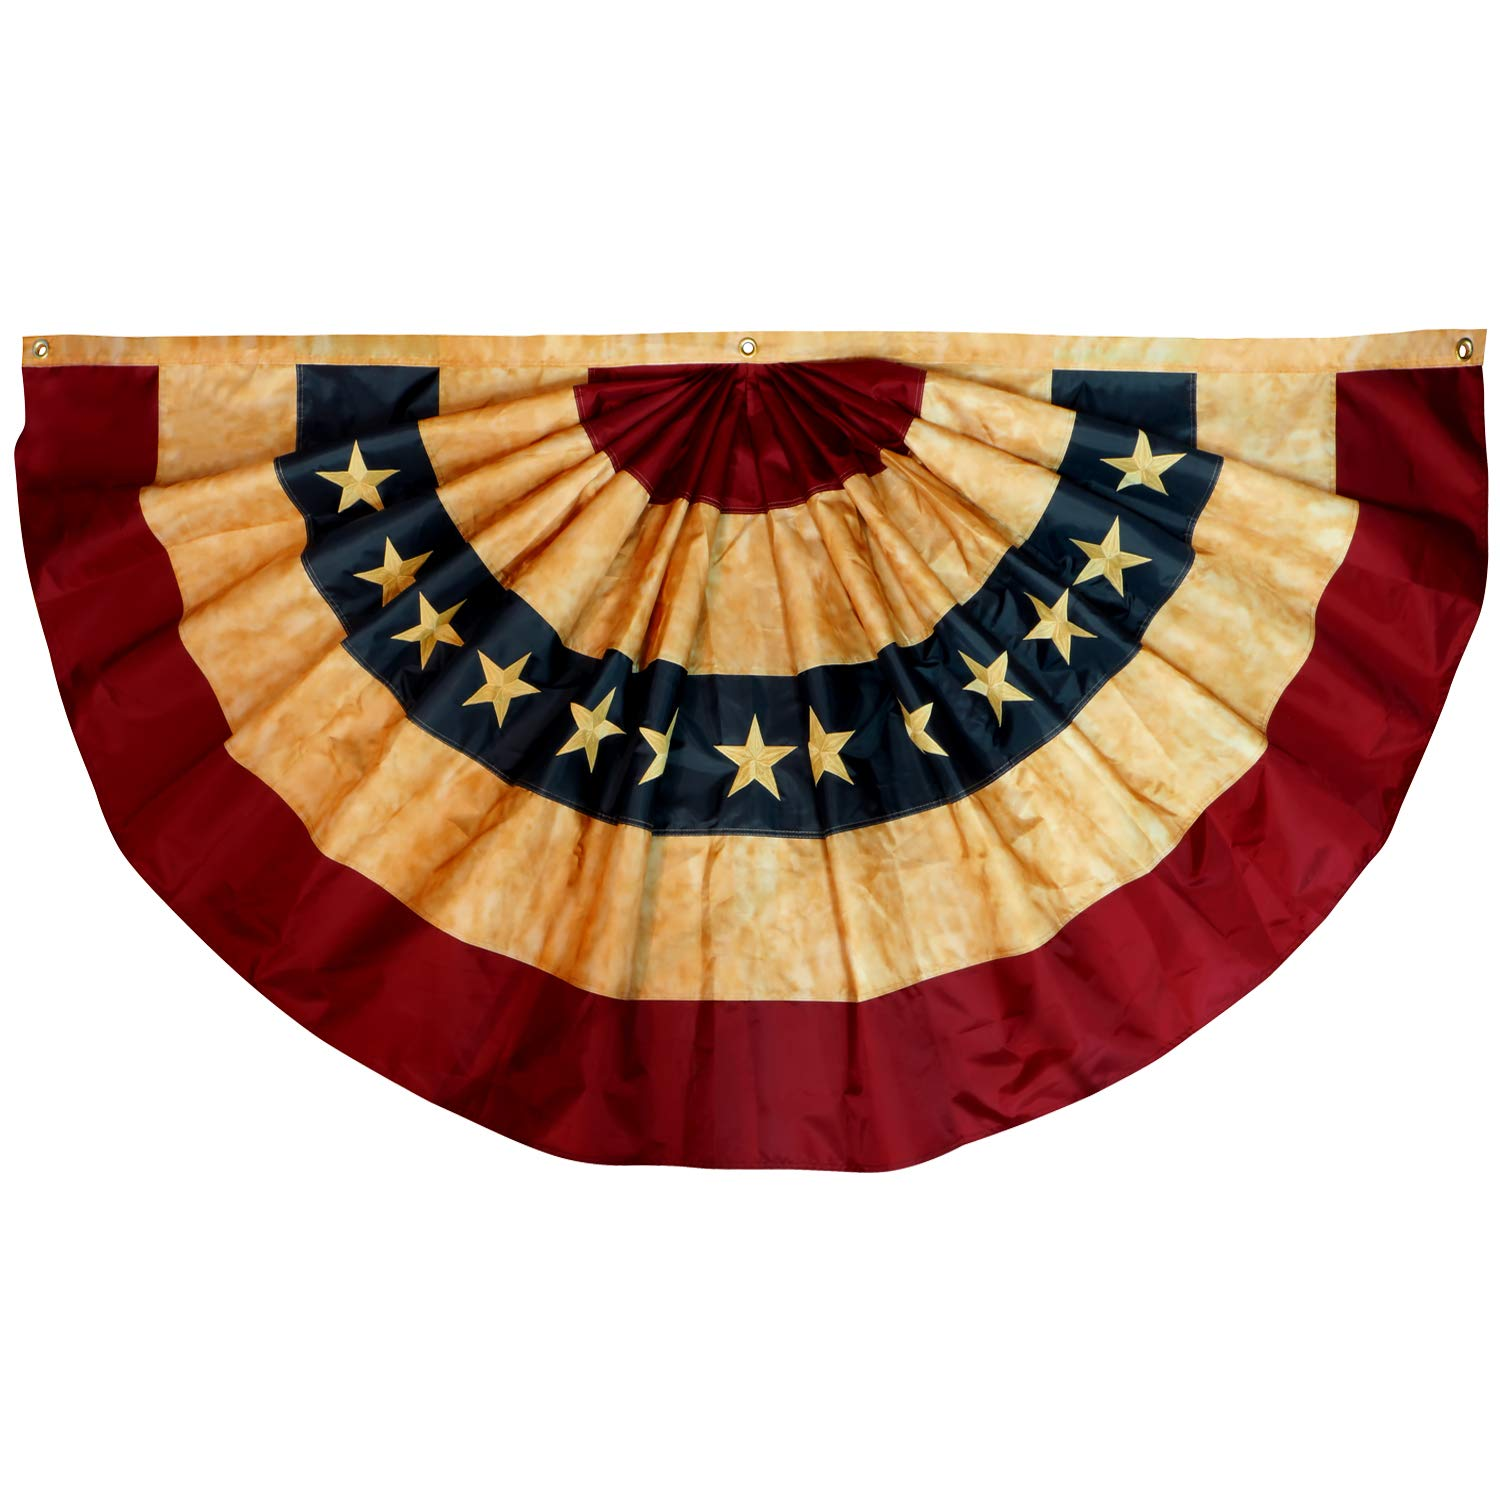 Amazon Com Anley Vintage Style Usa Pleated Fan Flag 3x6 Ft American Us Bunting Flags Patriotic Stars Stripes Sharp Color Fade Resistant Canvas Header And Brass Grommets United States